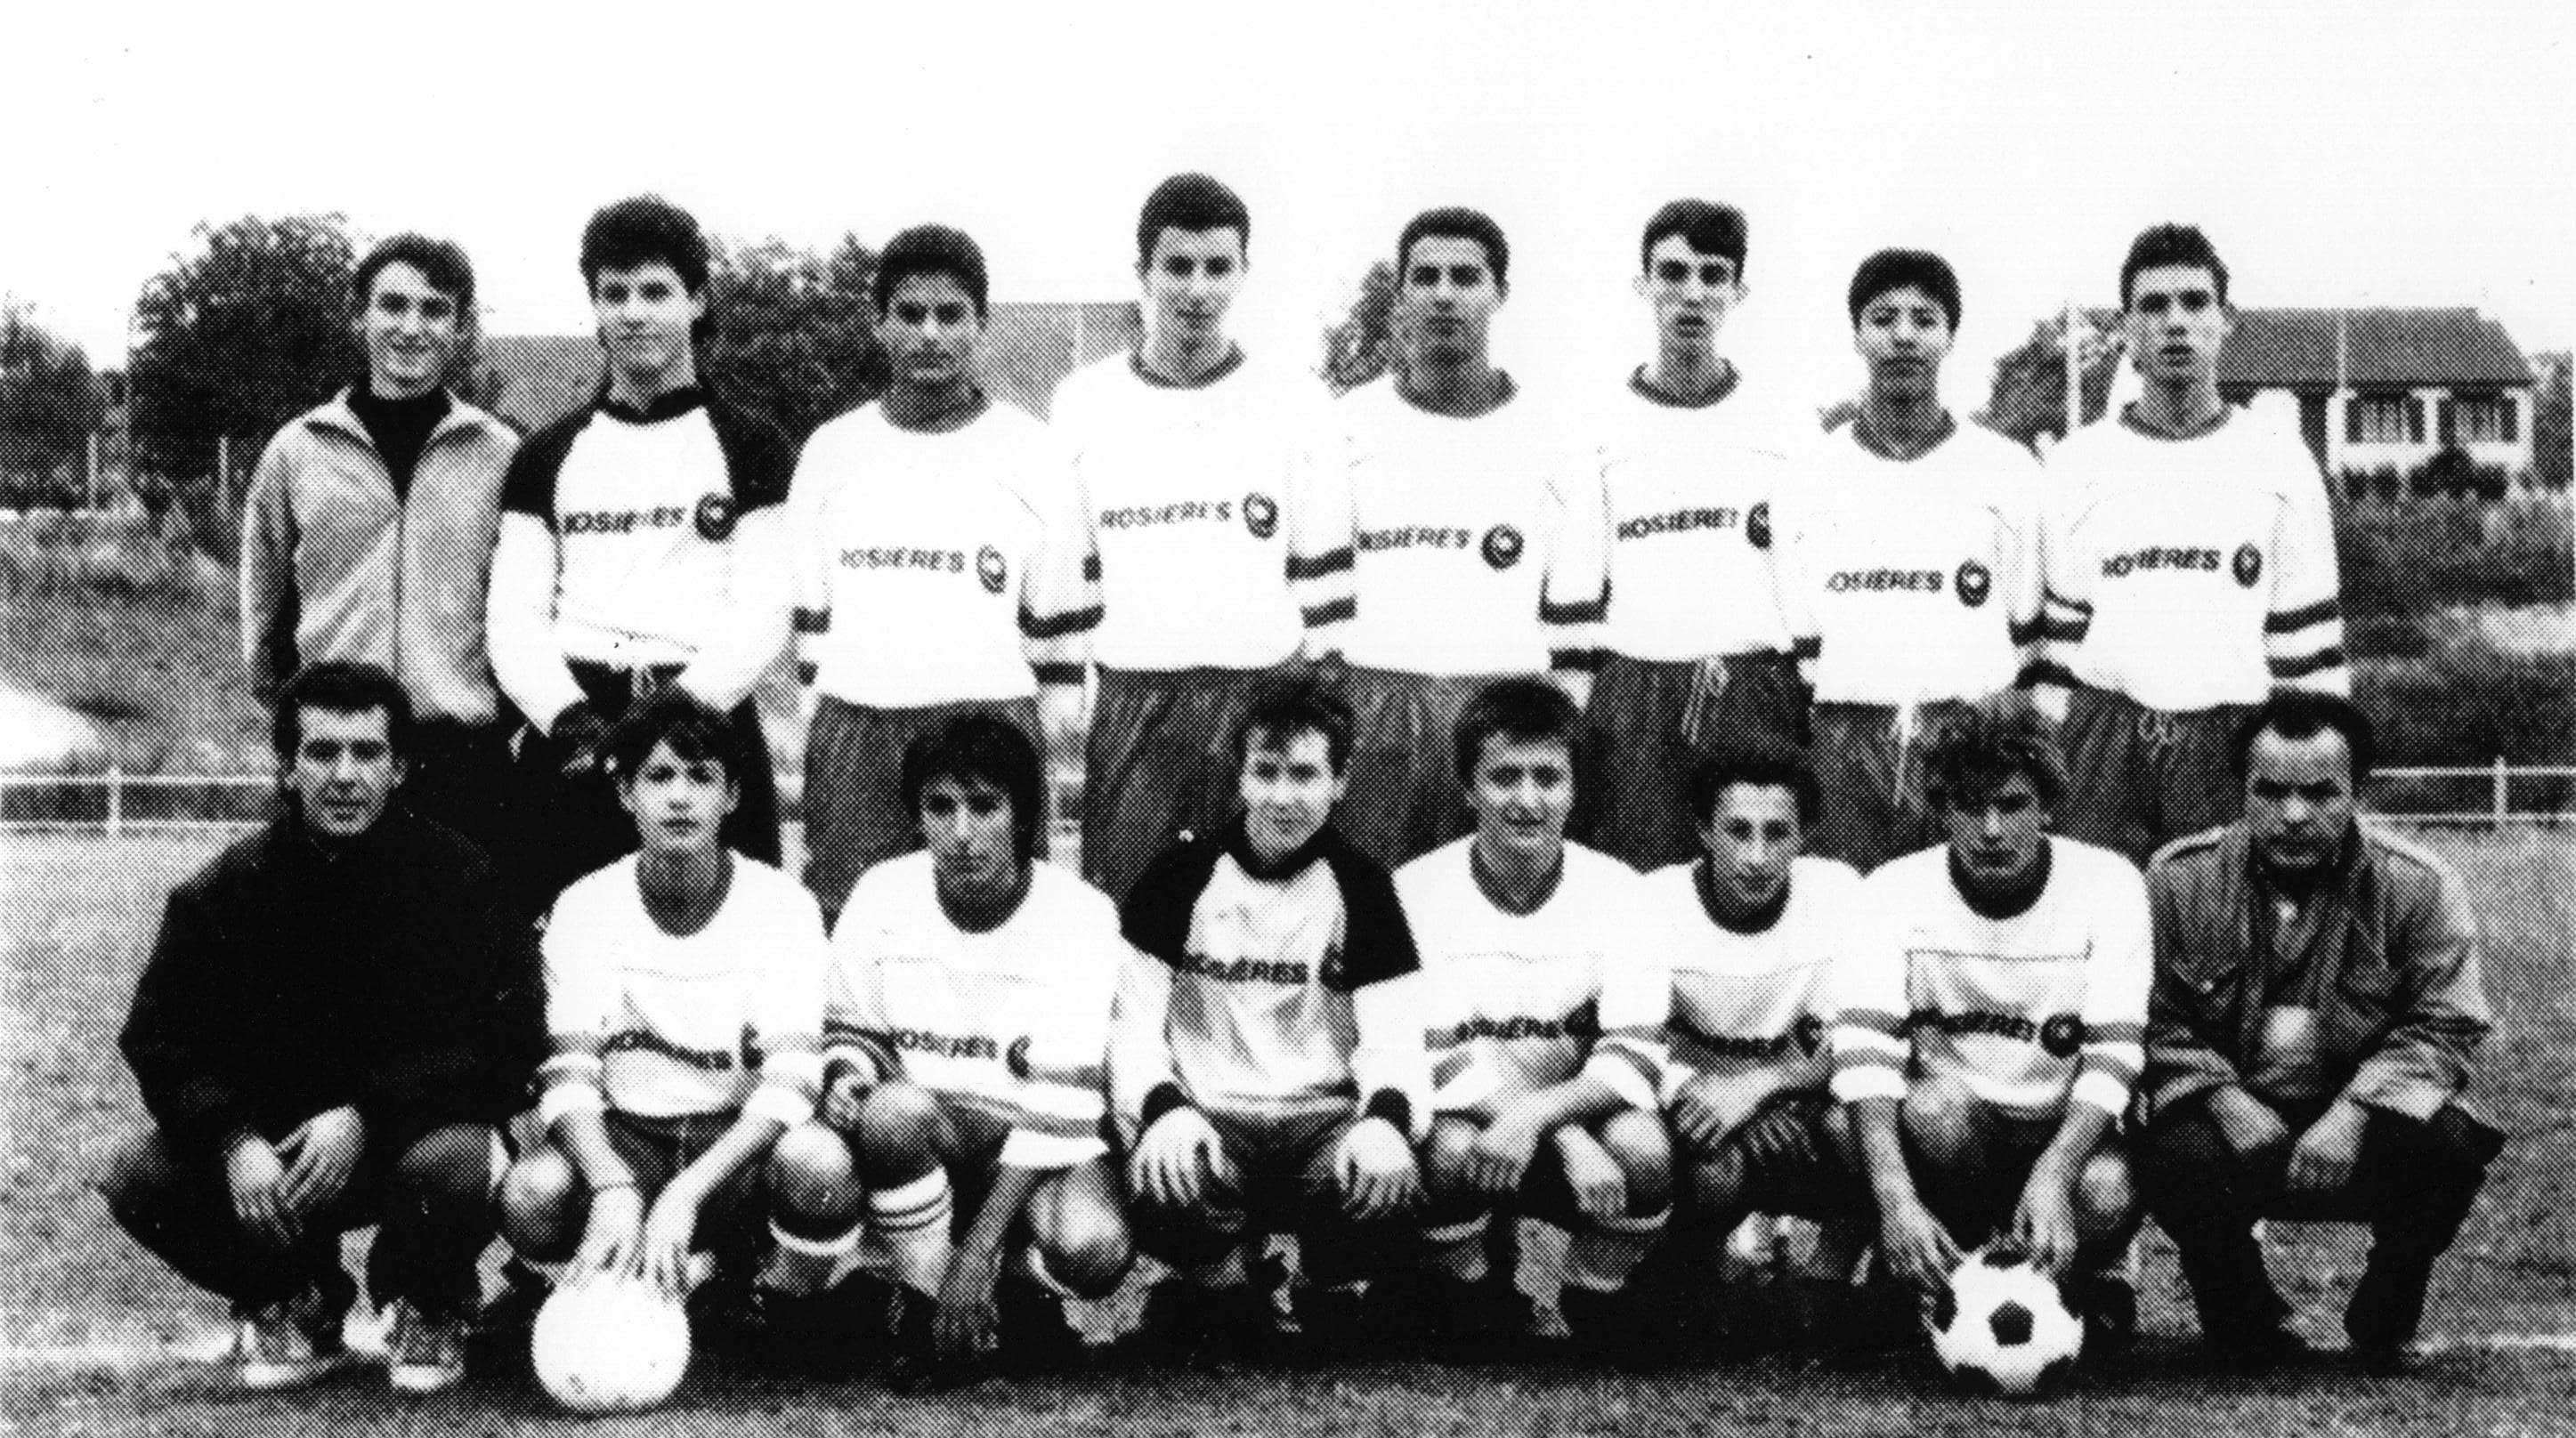 Juniors saison 1989-1990